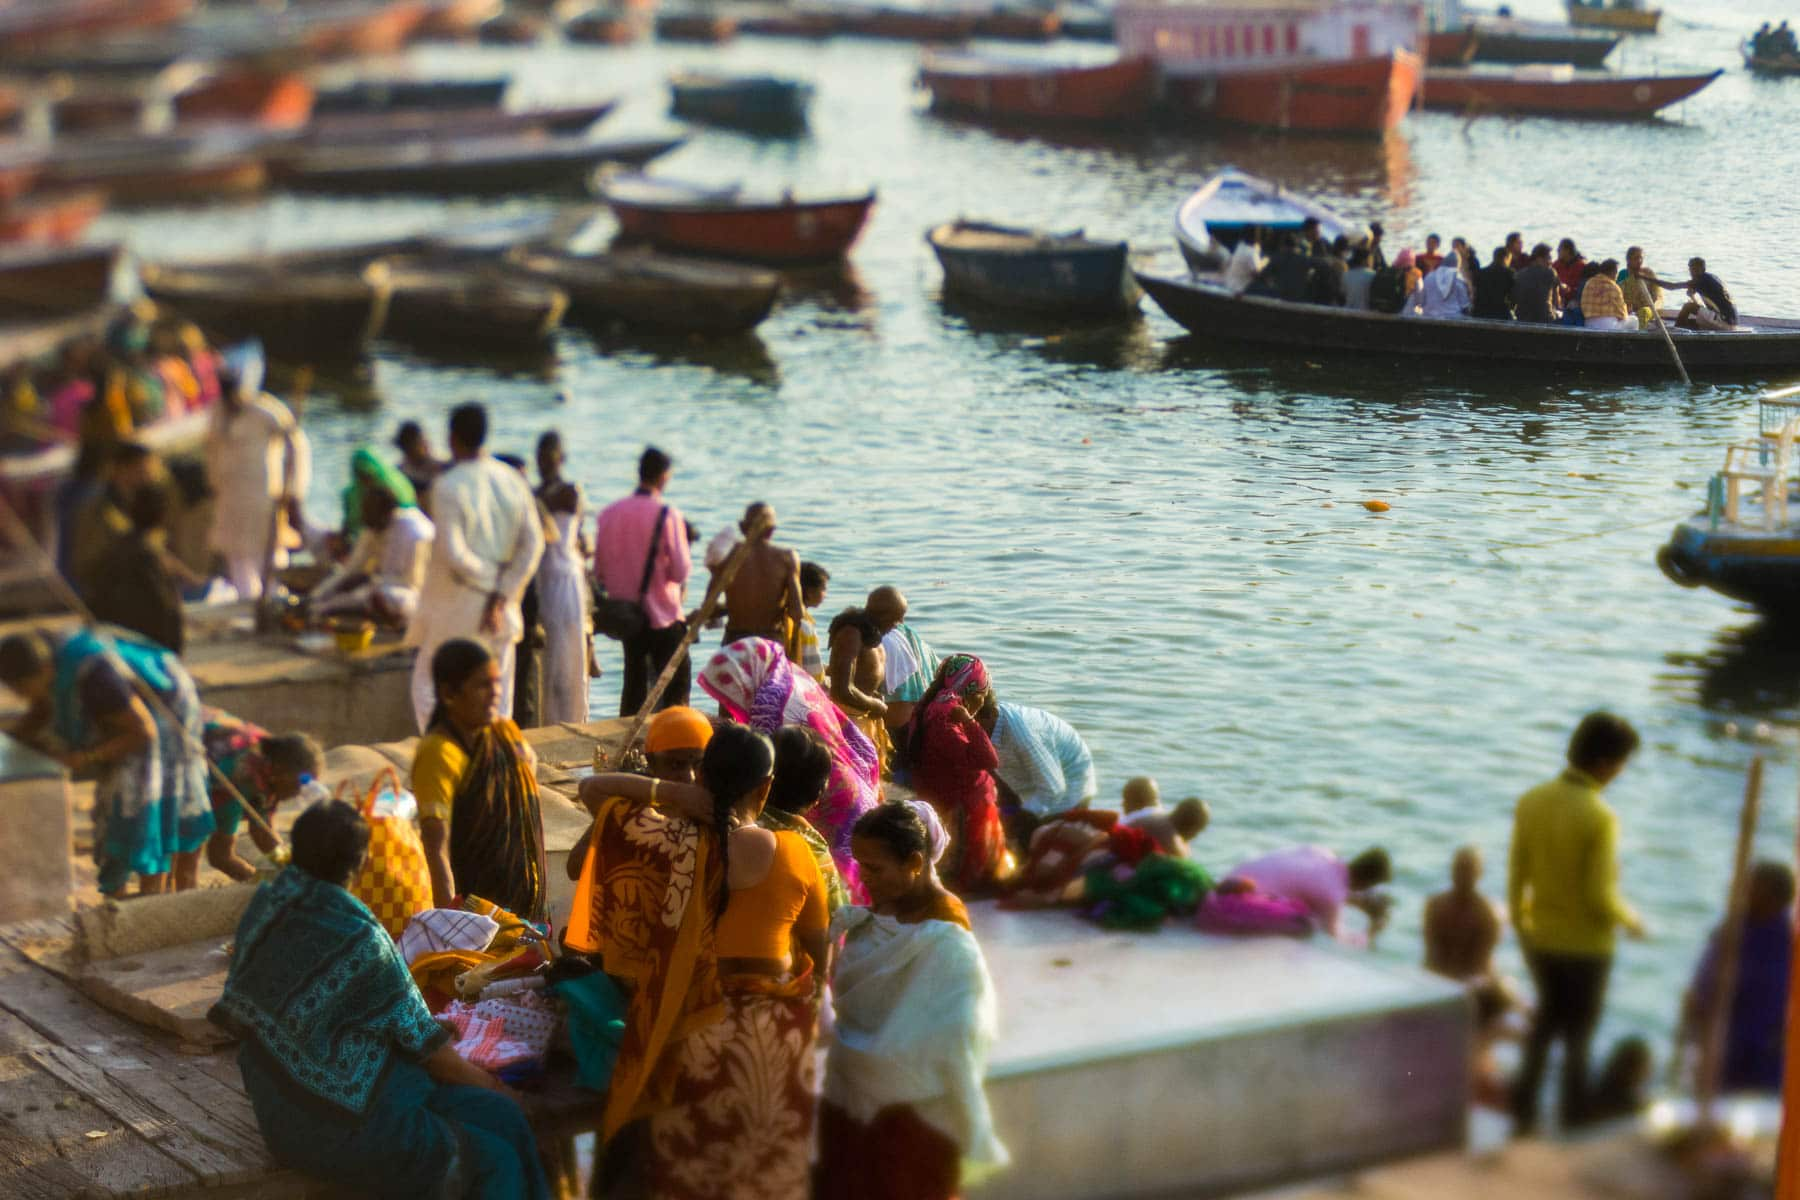 Lensbaby Edge 50 Optic review - Men and women waiting to take a boat ride on the Ganges in Varanasi, India - Lost With Purpose